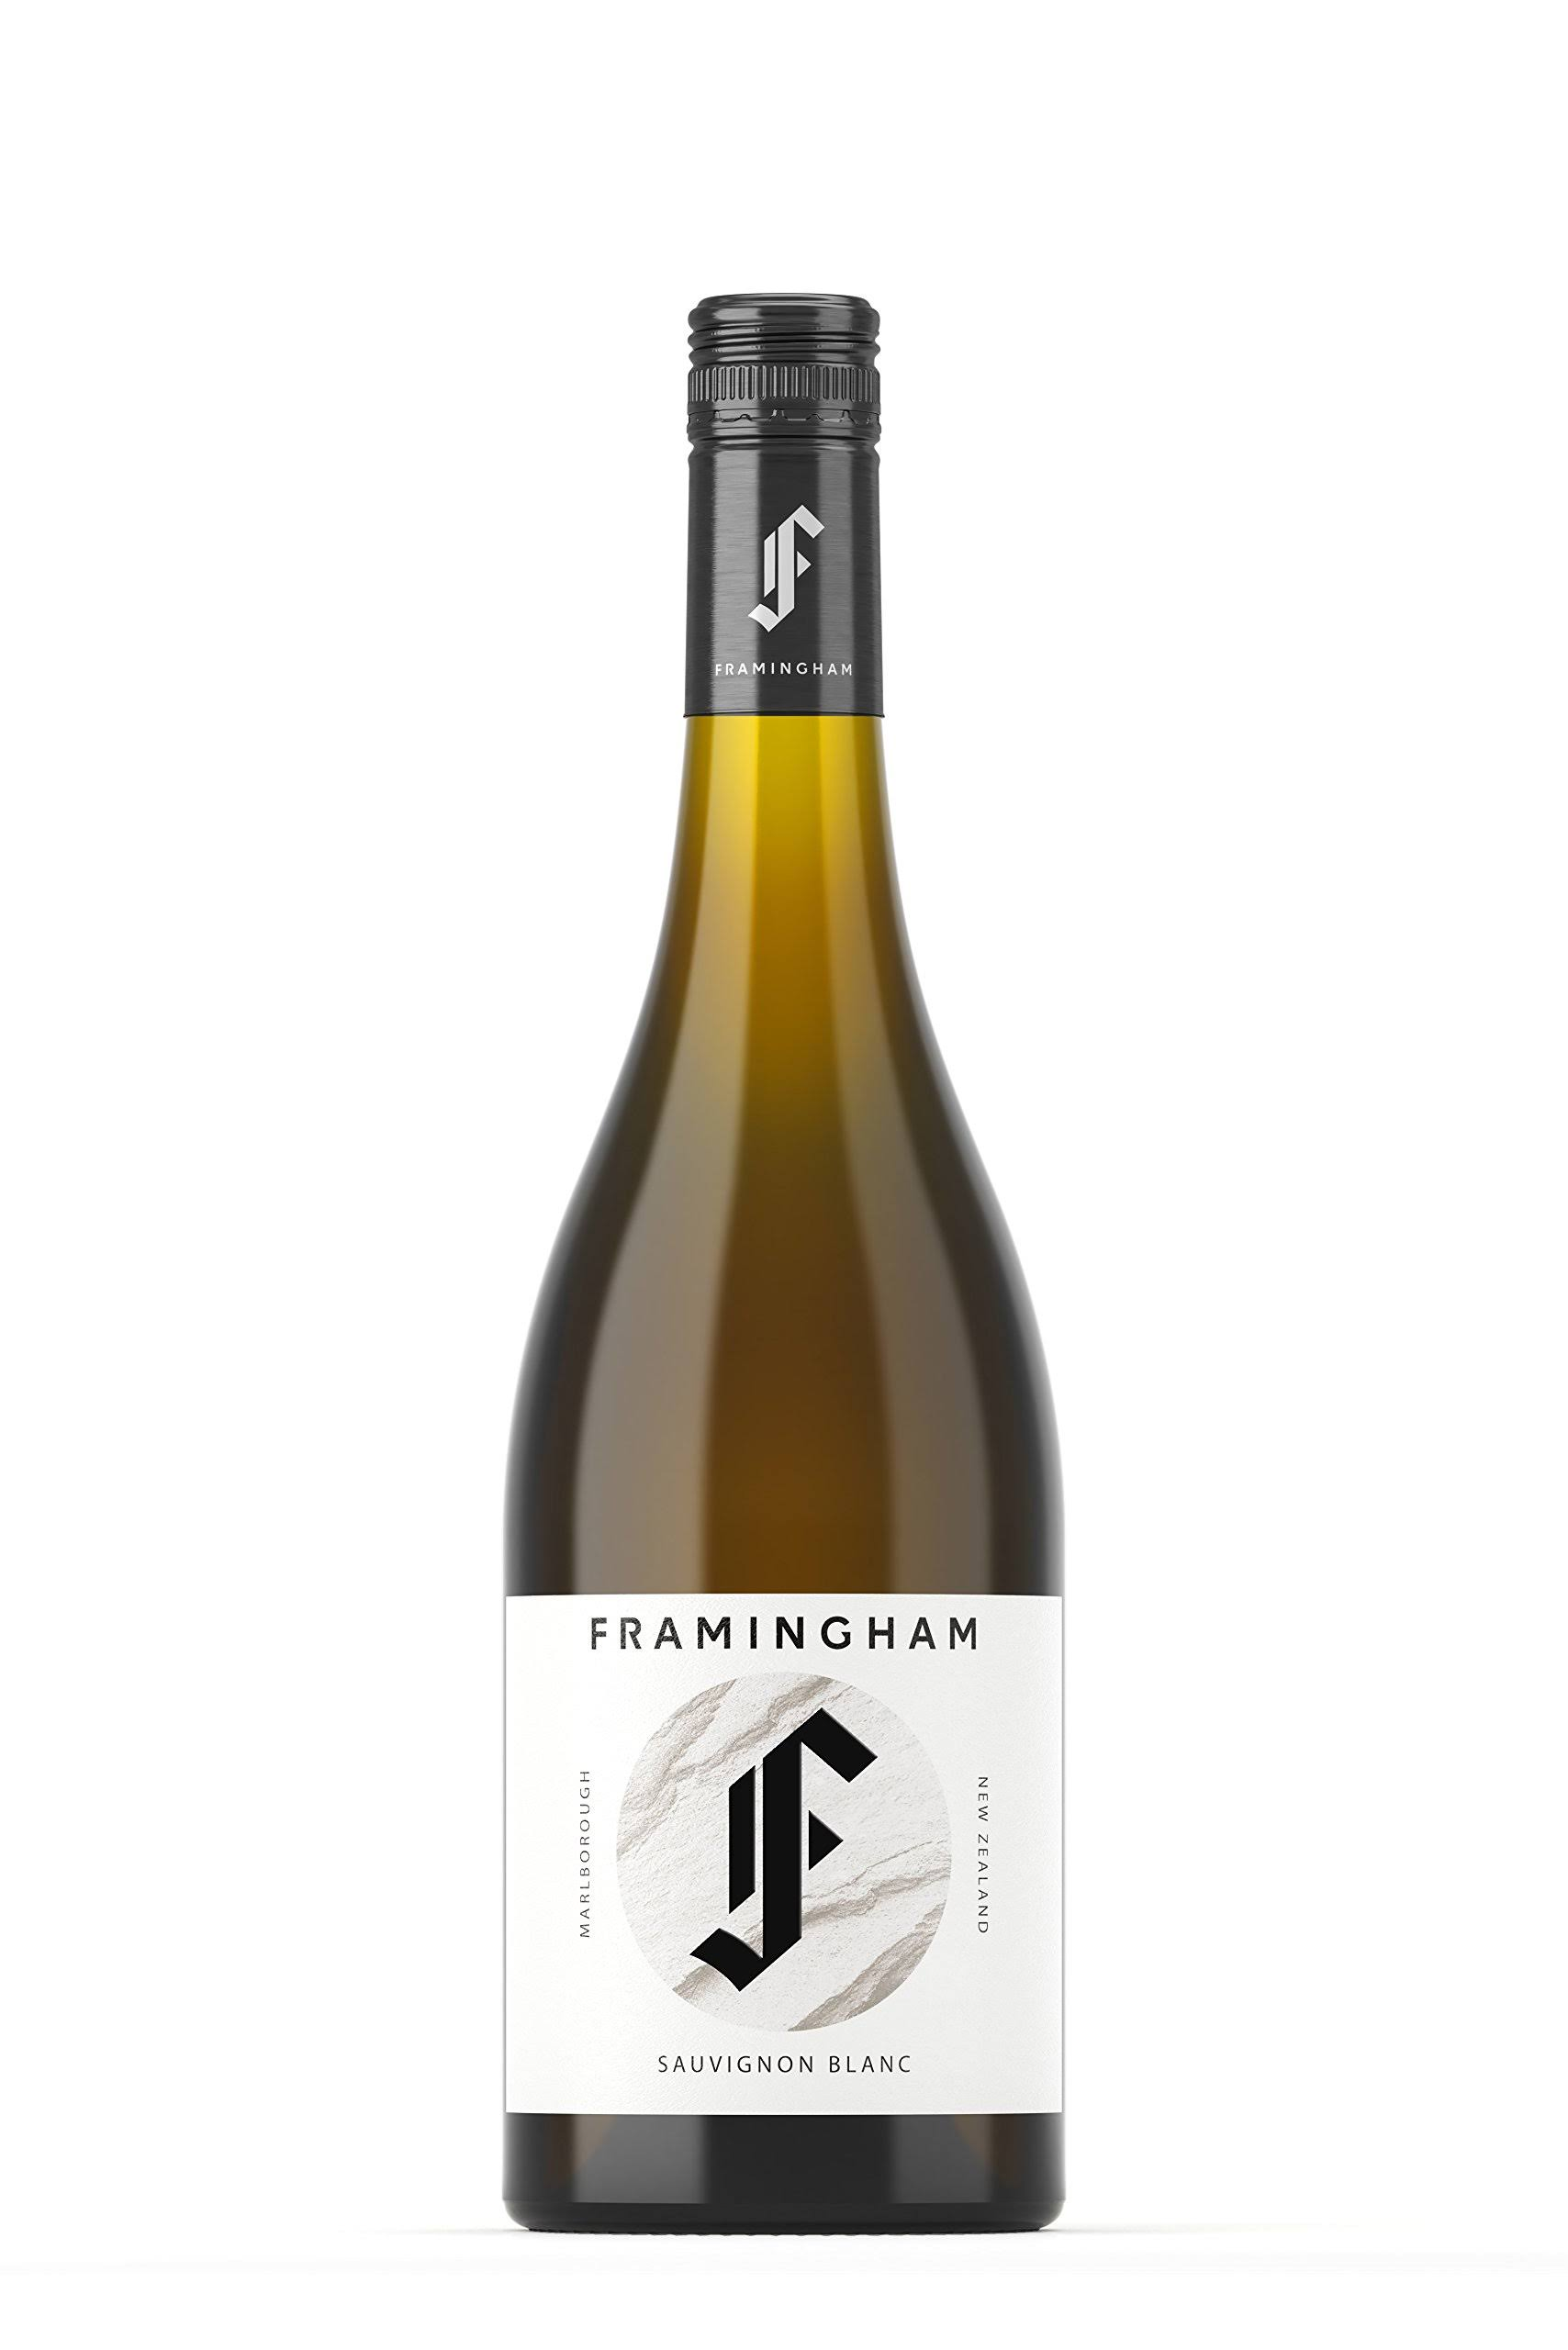 Framingham Sauvignon Blanc - Marlborough, New Zealand